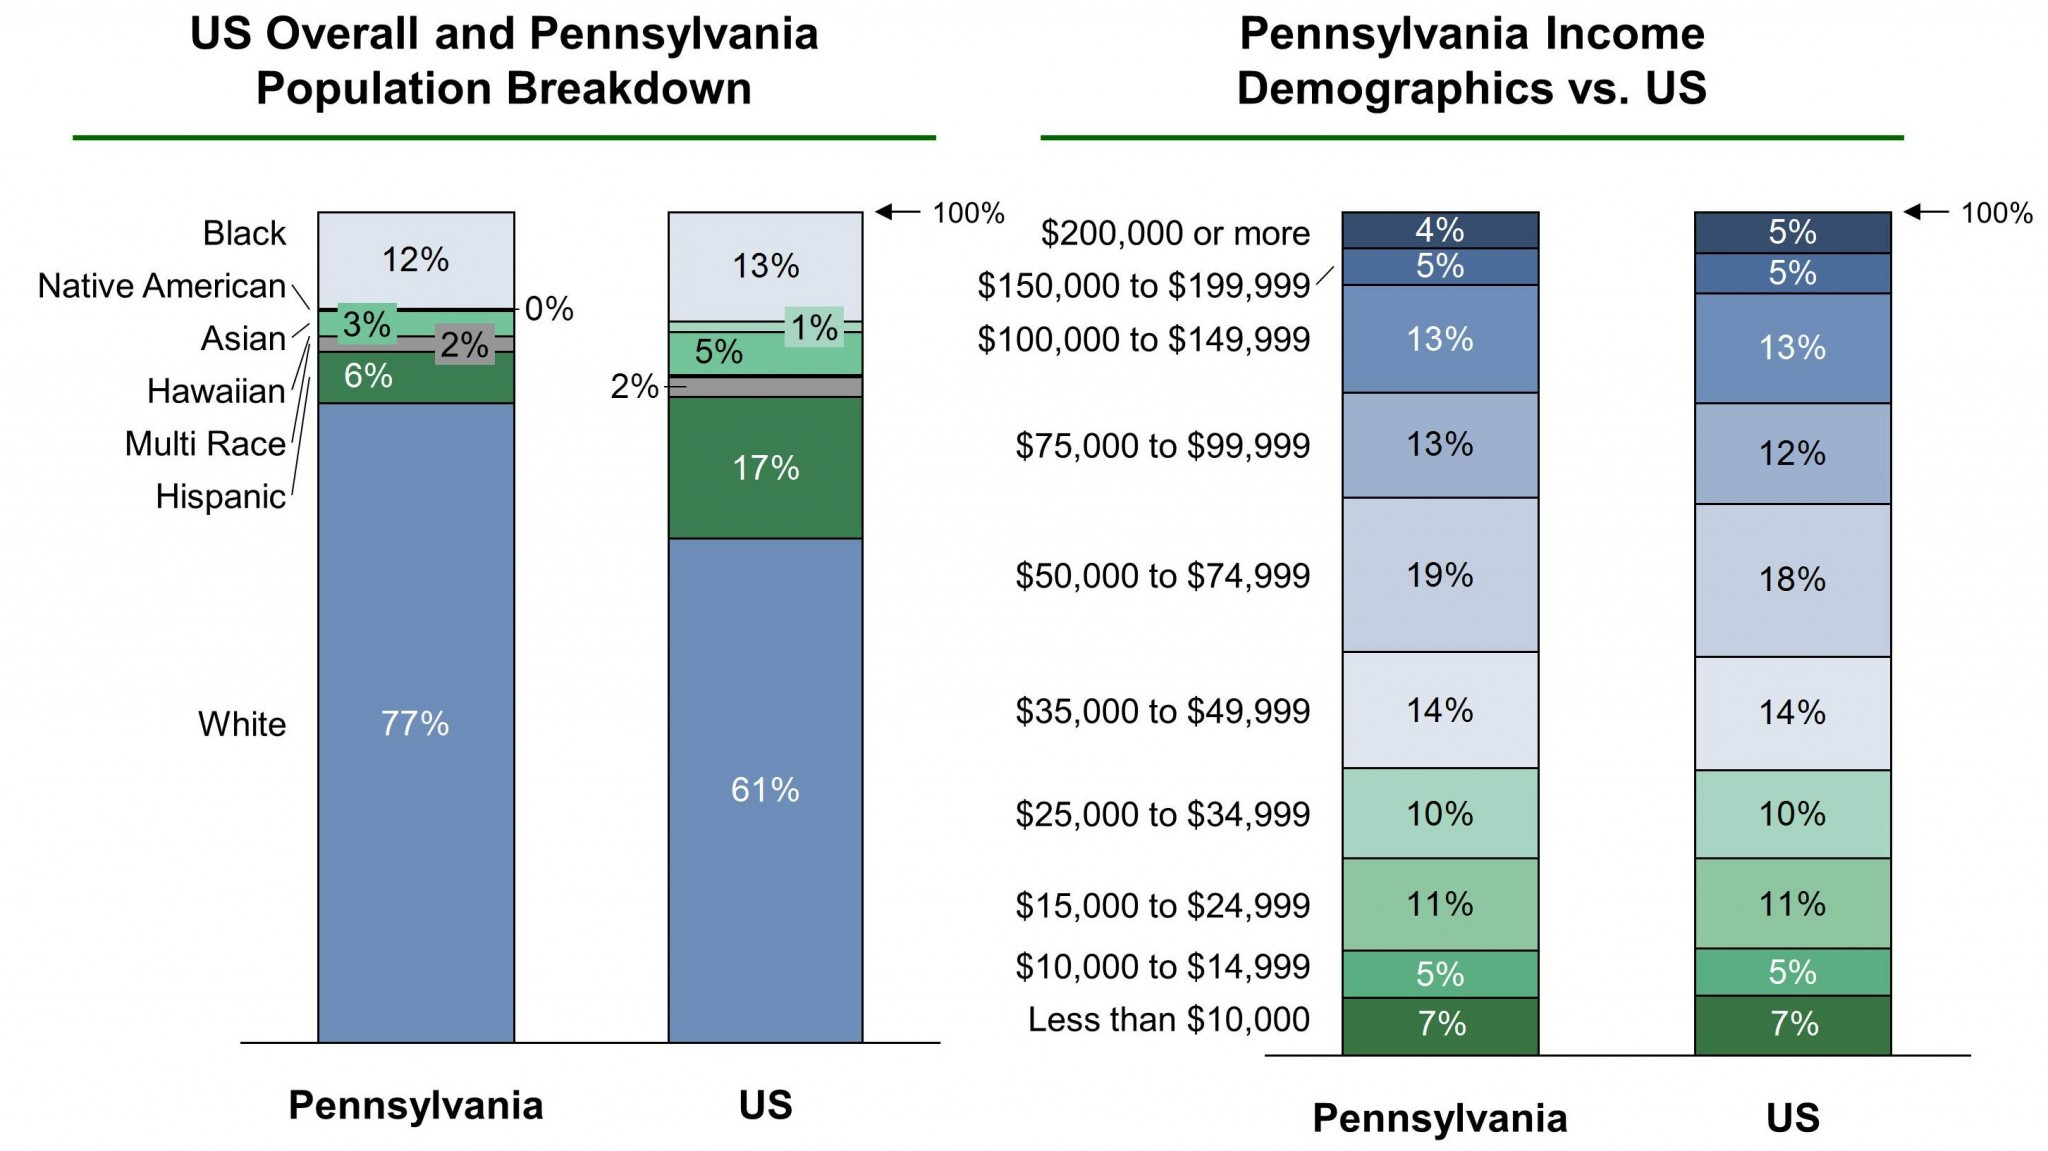 Pennsylvania EB-5 Regional Center Demographics VF